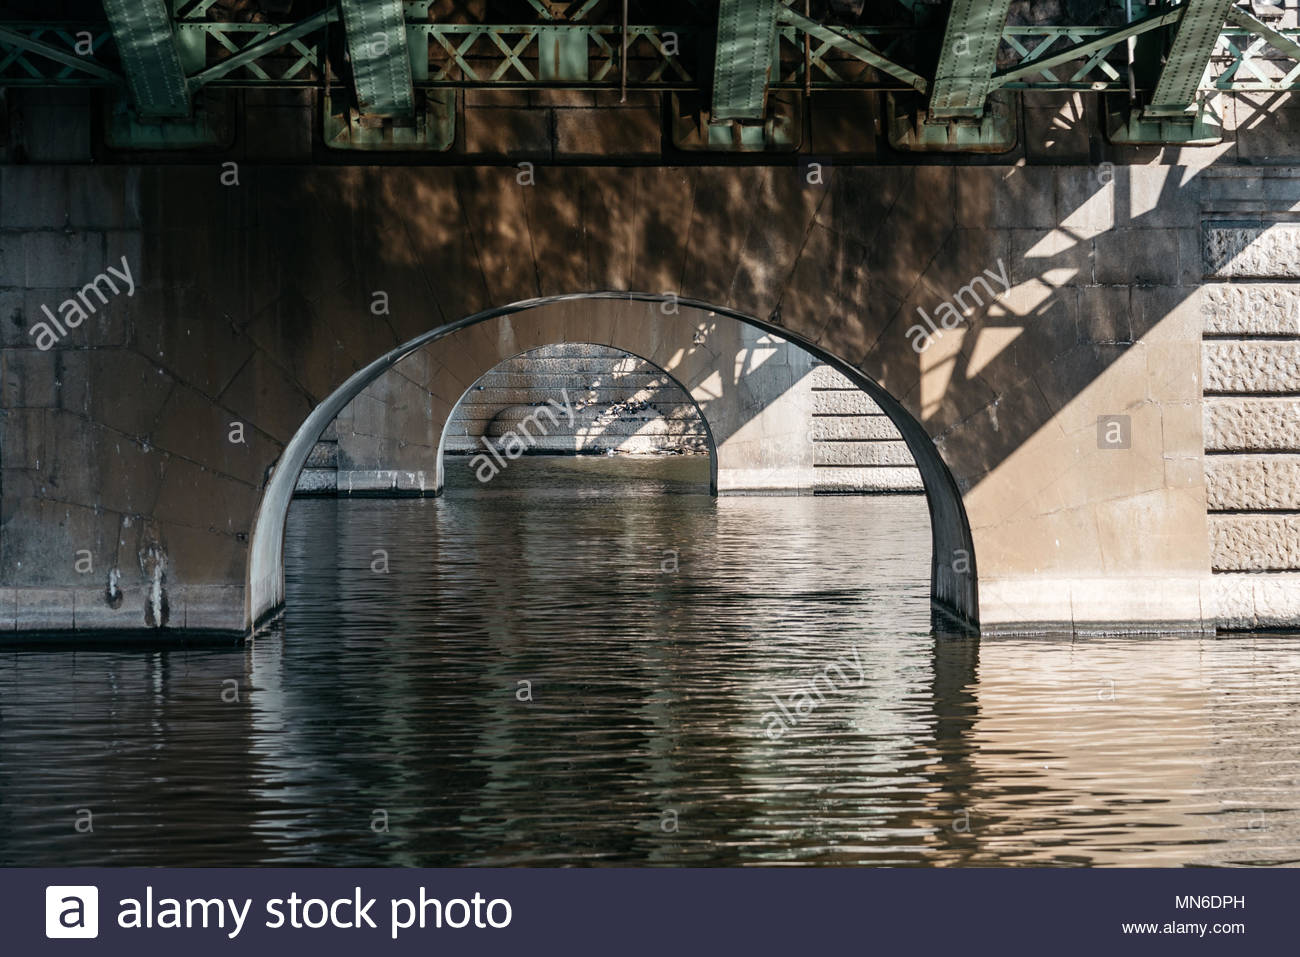 View under the bridge on river Transportation wallpaper 1300x957